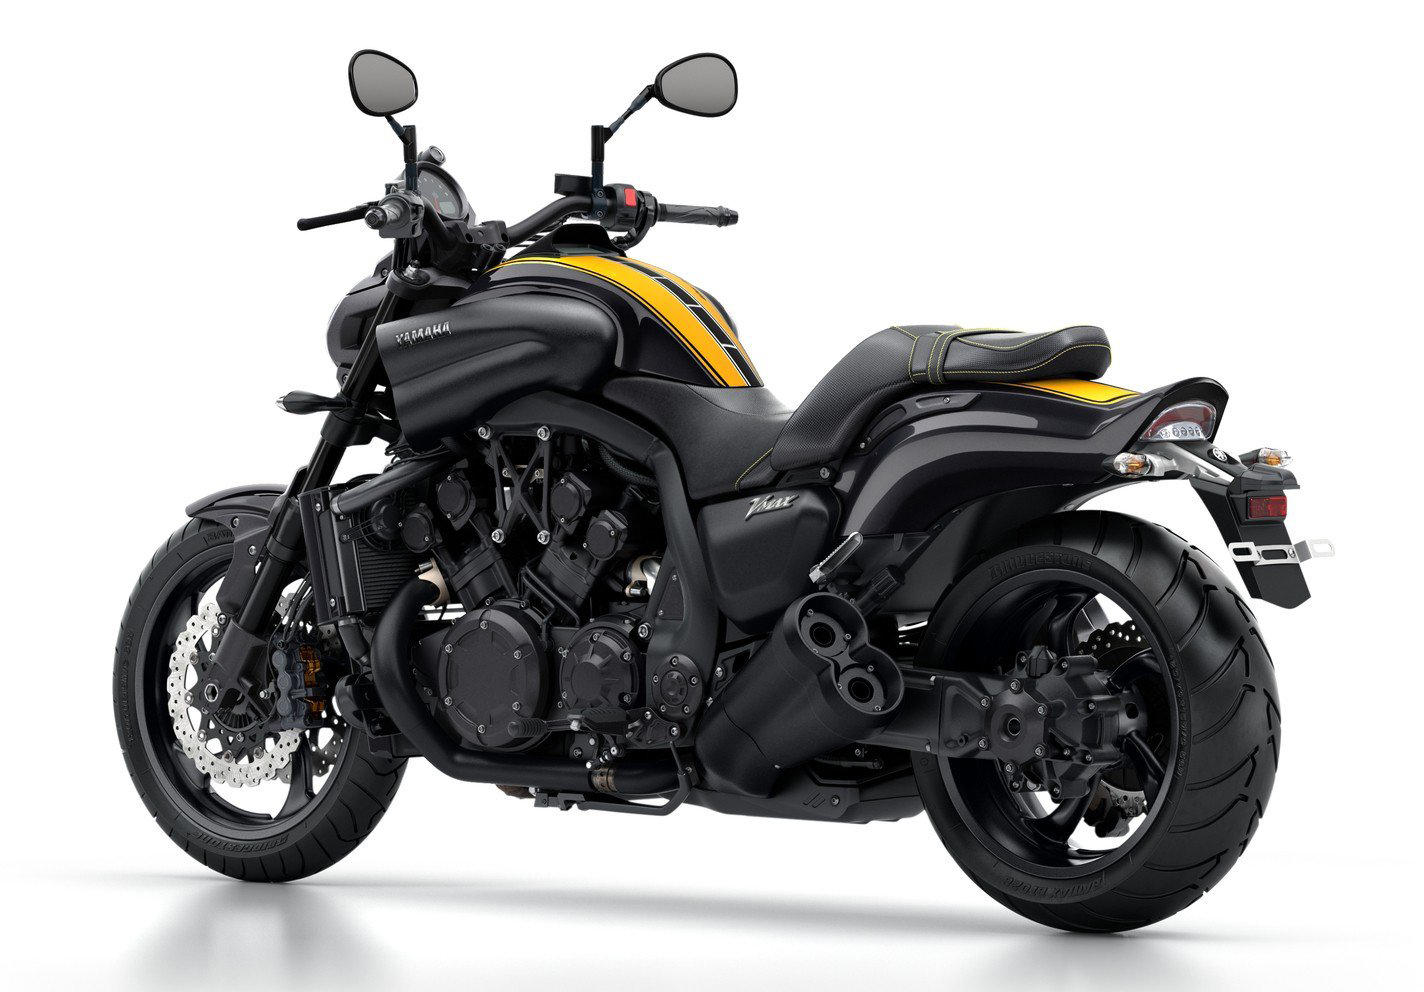 yamaha-vmax-60th-anniversary-shows-how-the-bike-should-really-be-like-photo-gallery-18-1